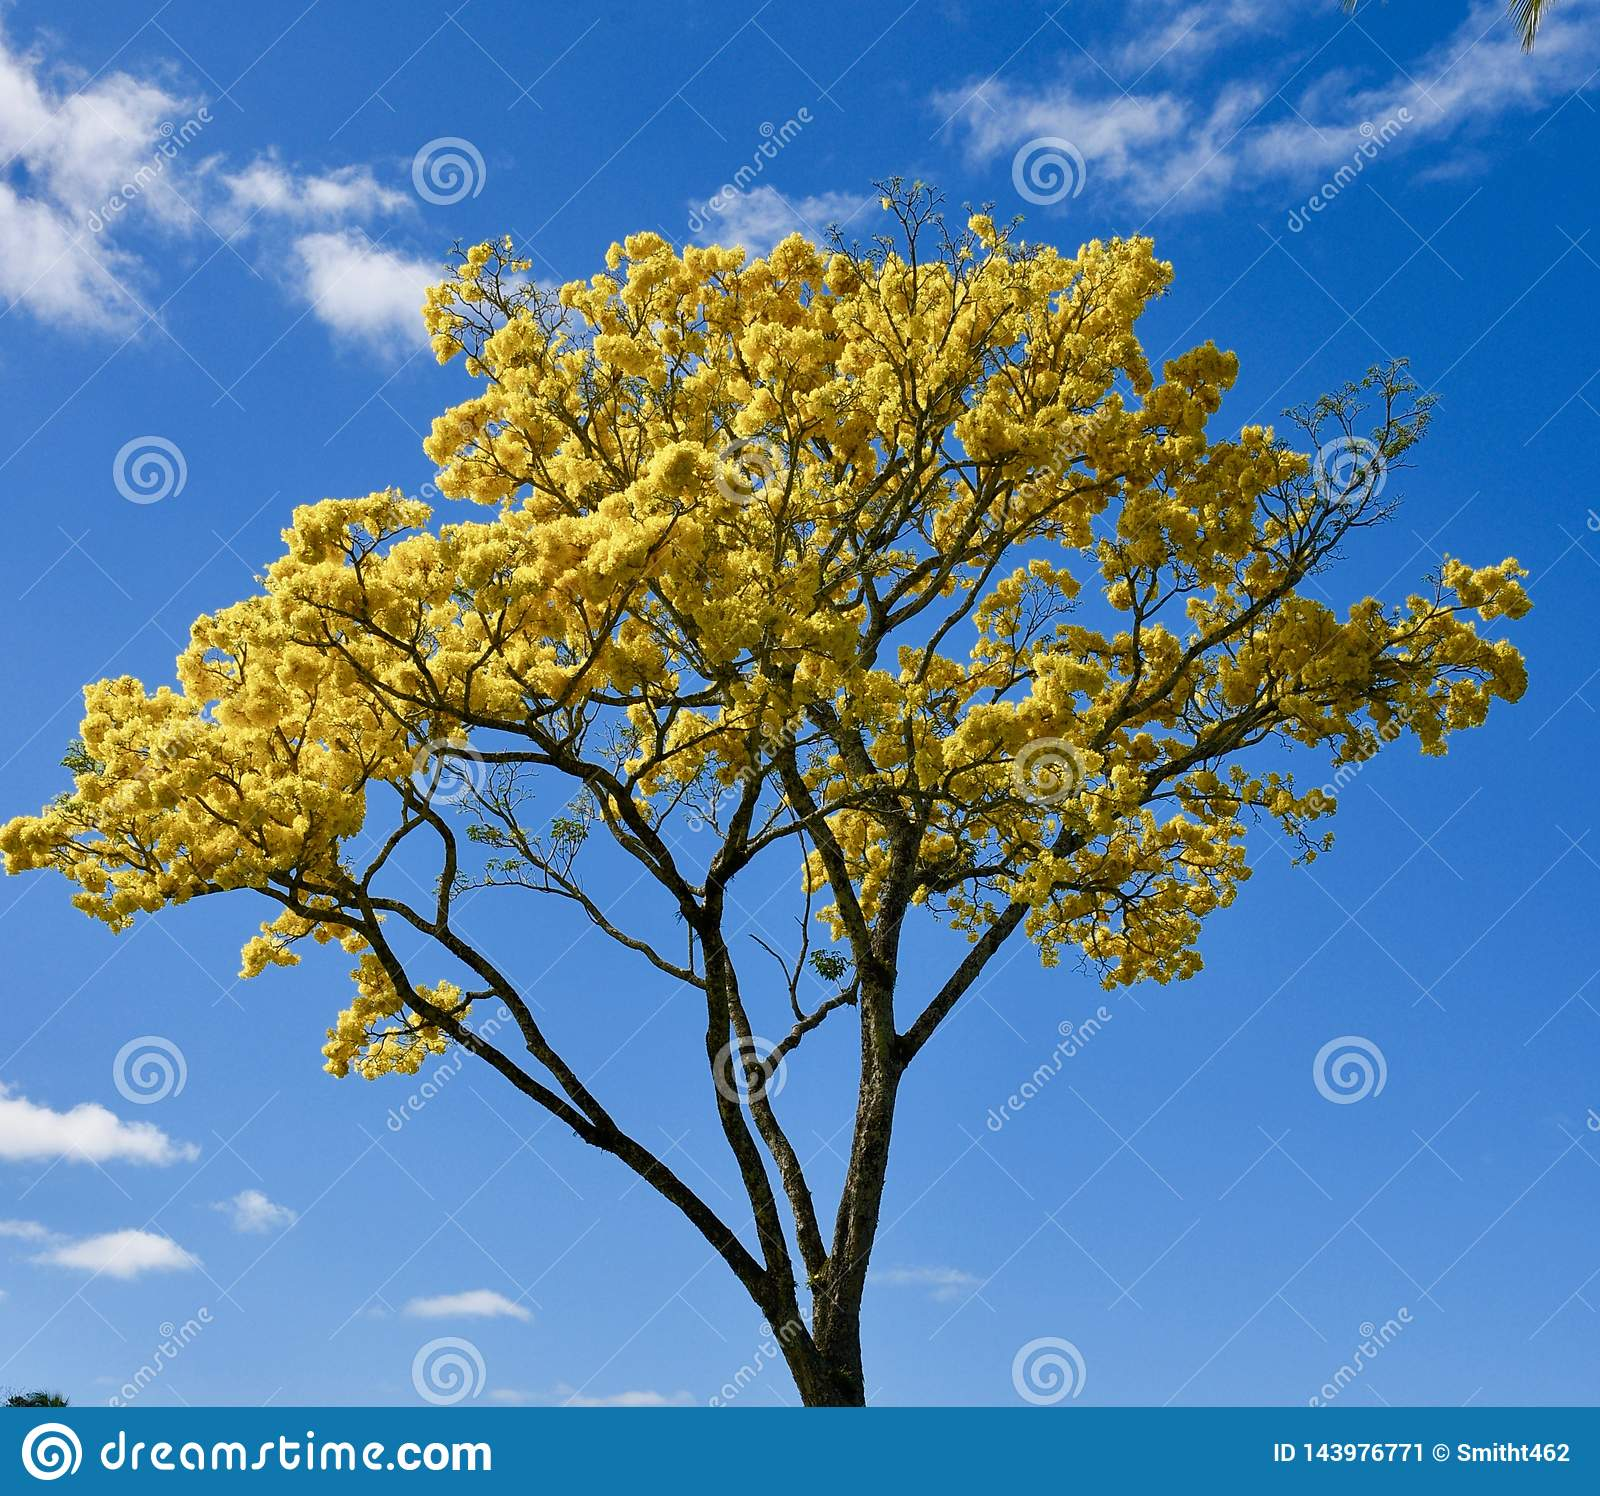 Yellow Golden Shower tree bloom on Hawaii Island